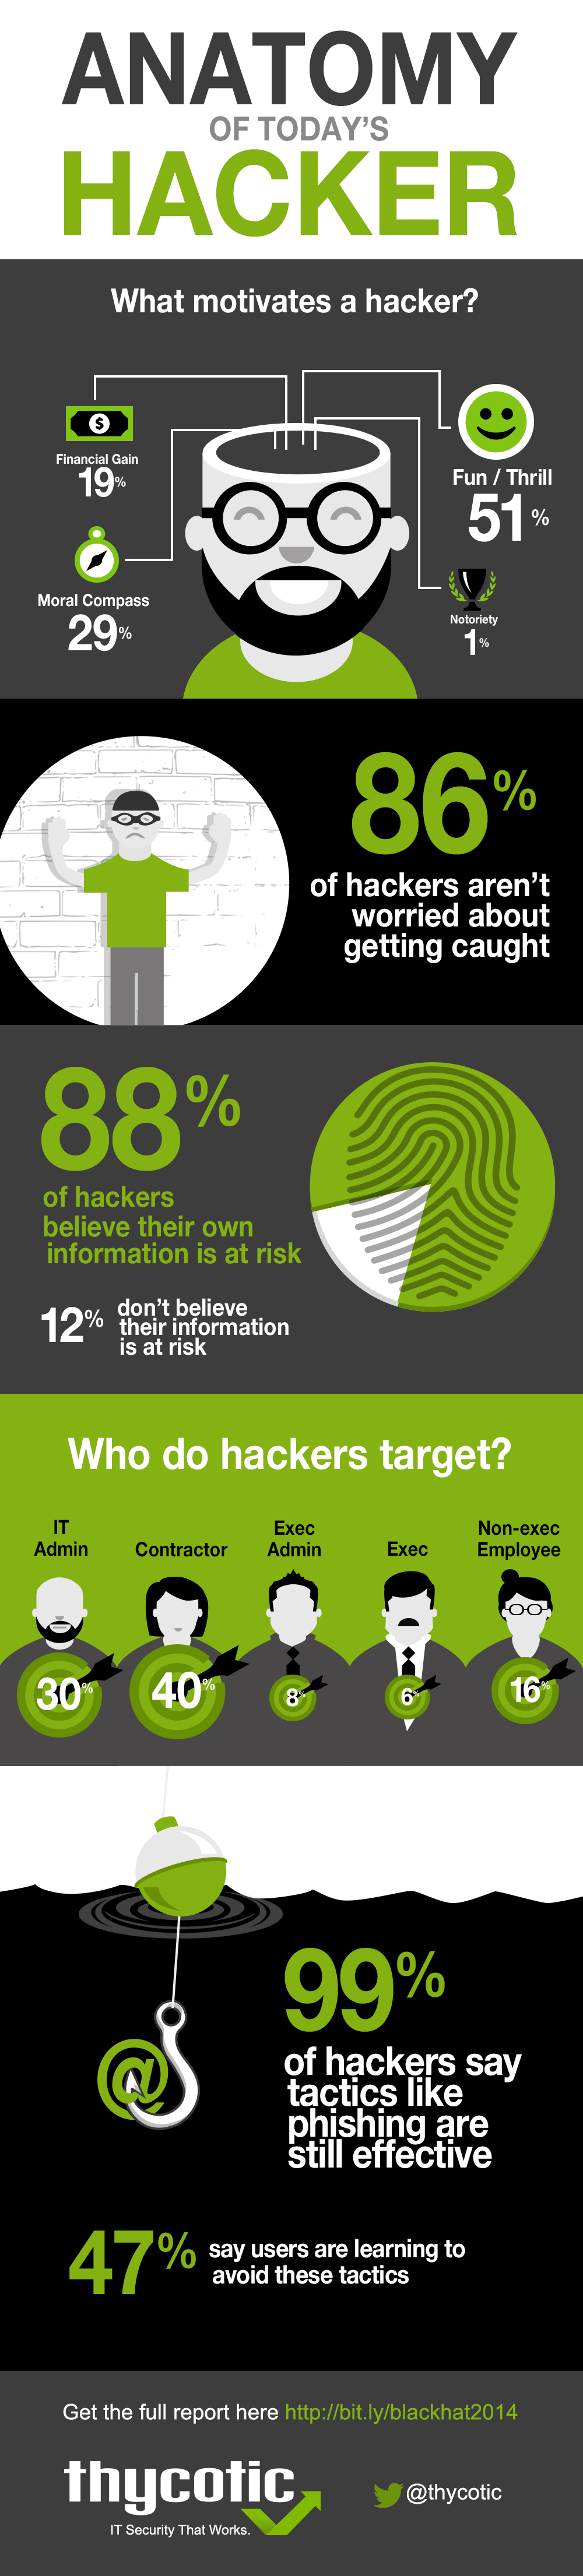 Black Hat Hacker Infographic - Anatomy of Today's Hacker